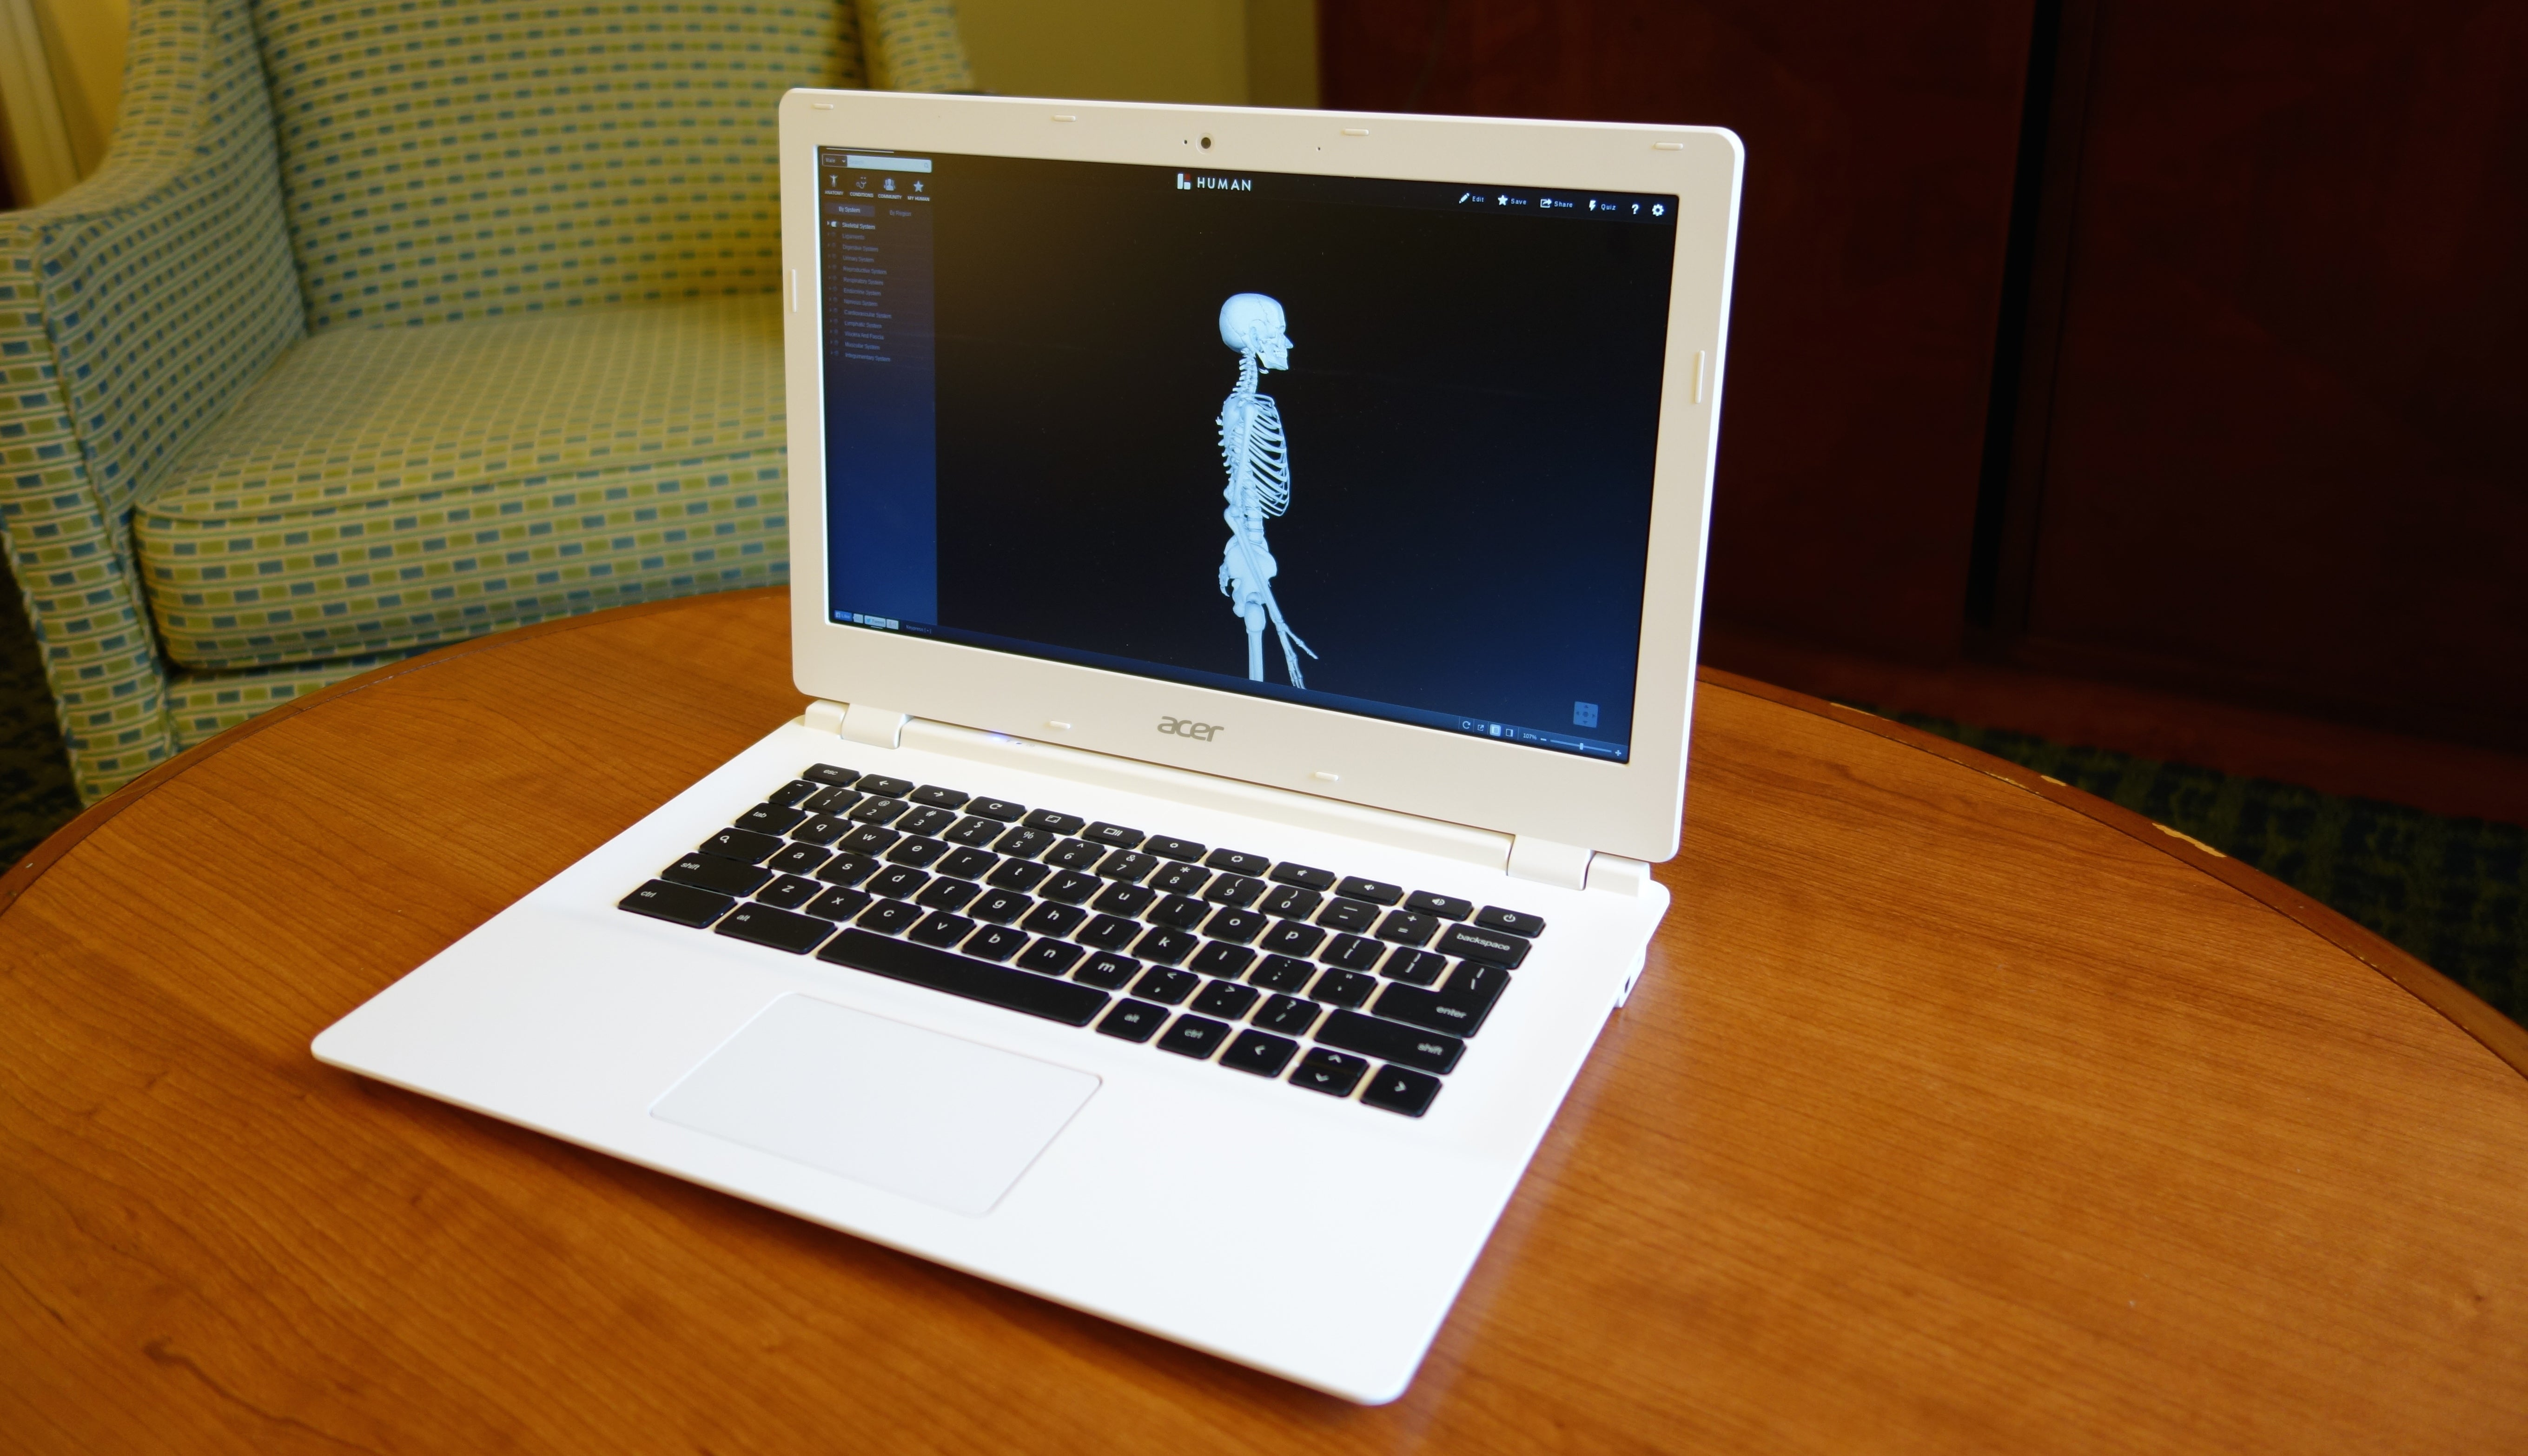 Acer Chromebook 13 Hands-On: Gaming Guts In A Chromebook Body